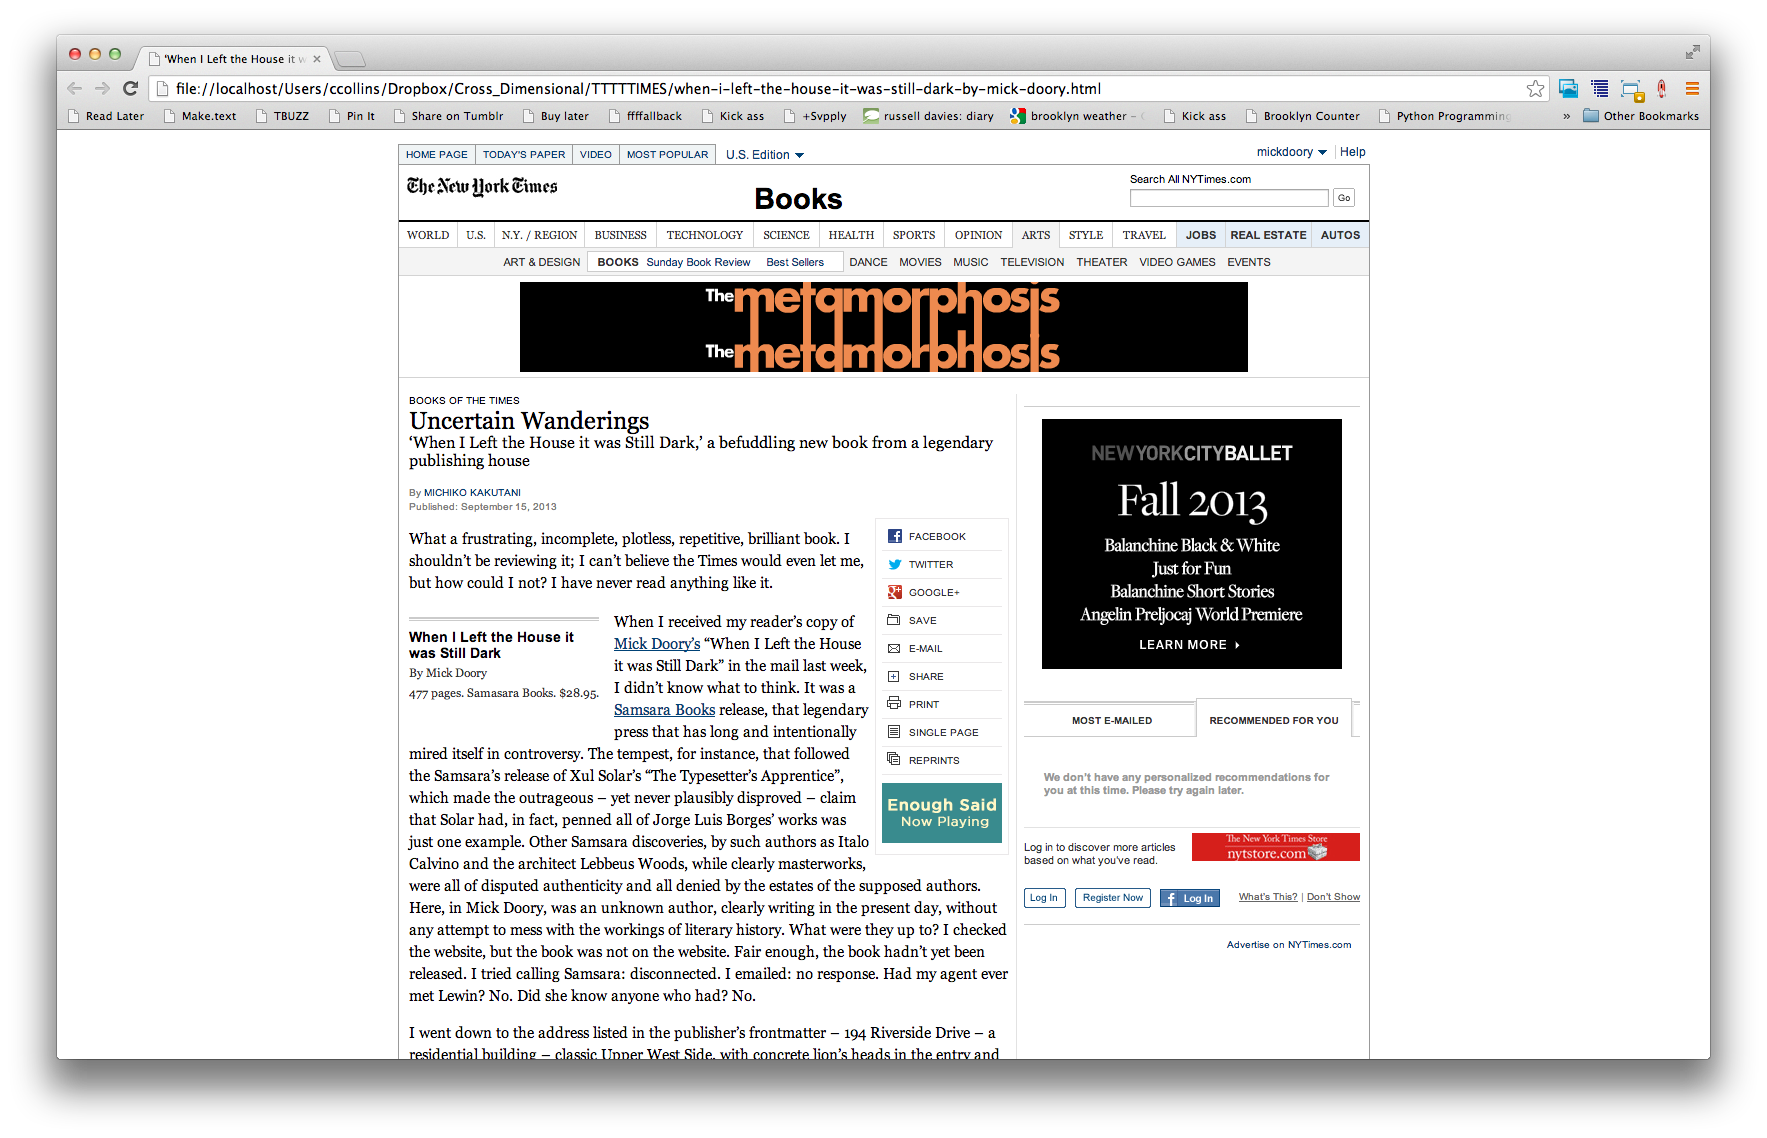 NYTimesBooks.com forgery text by Abraham Burickson. Design by Carl Collins